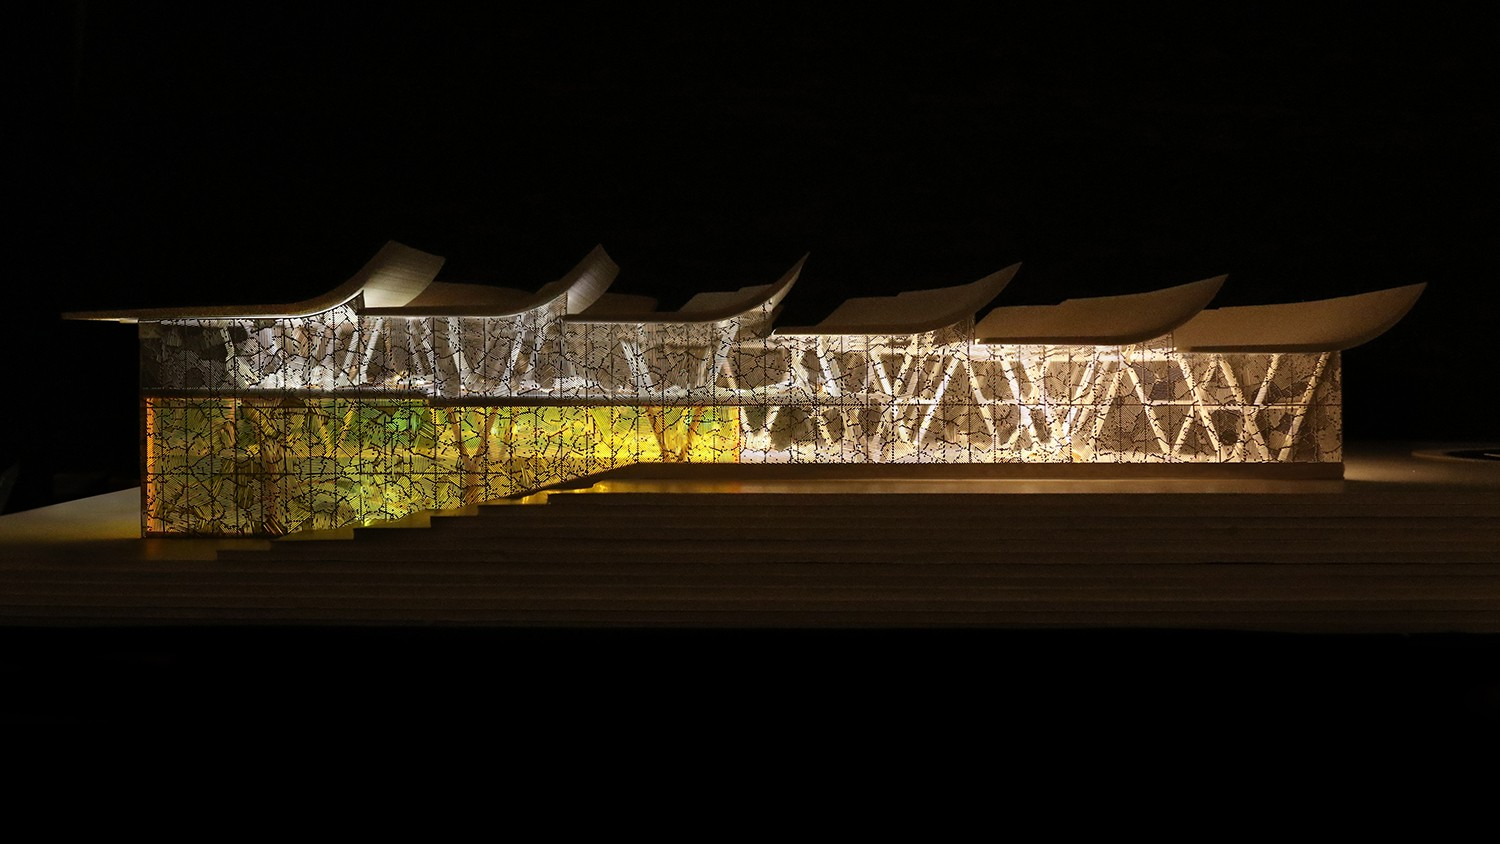 https://stevenholl.sfo2.digitaloceanspaces.com/uploads/projects/project-images/StevenHollArchitects_Malawi_Model_Night_1_WH.jpg